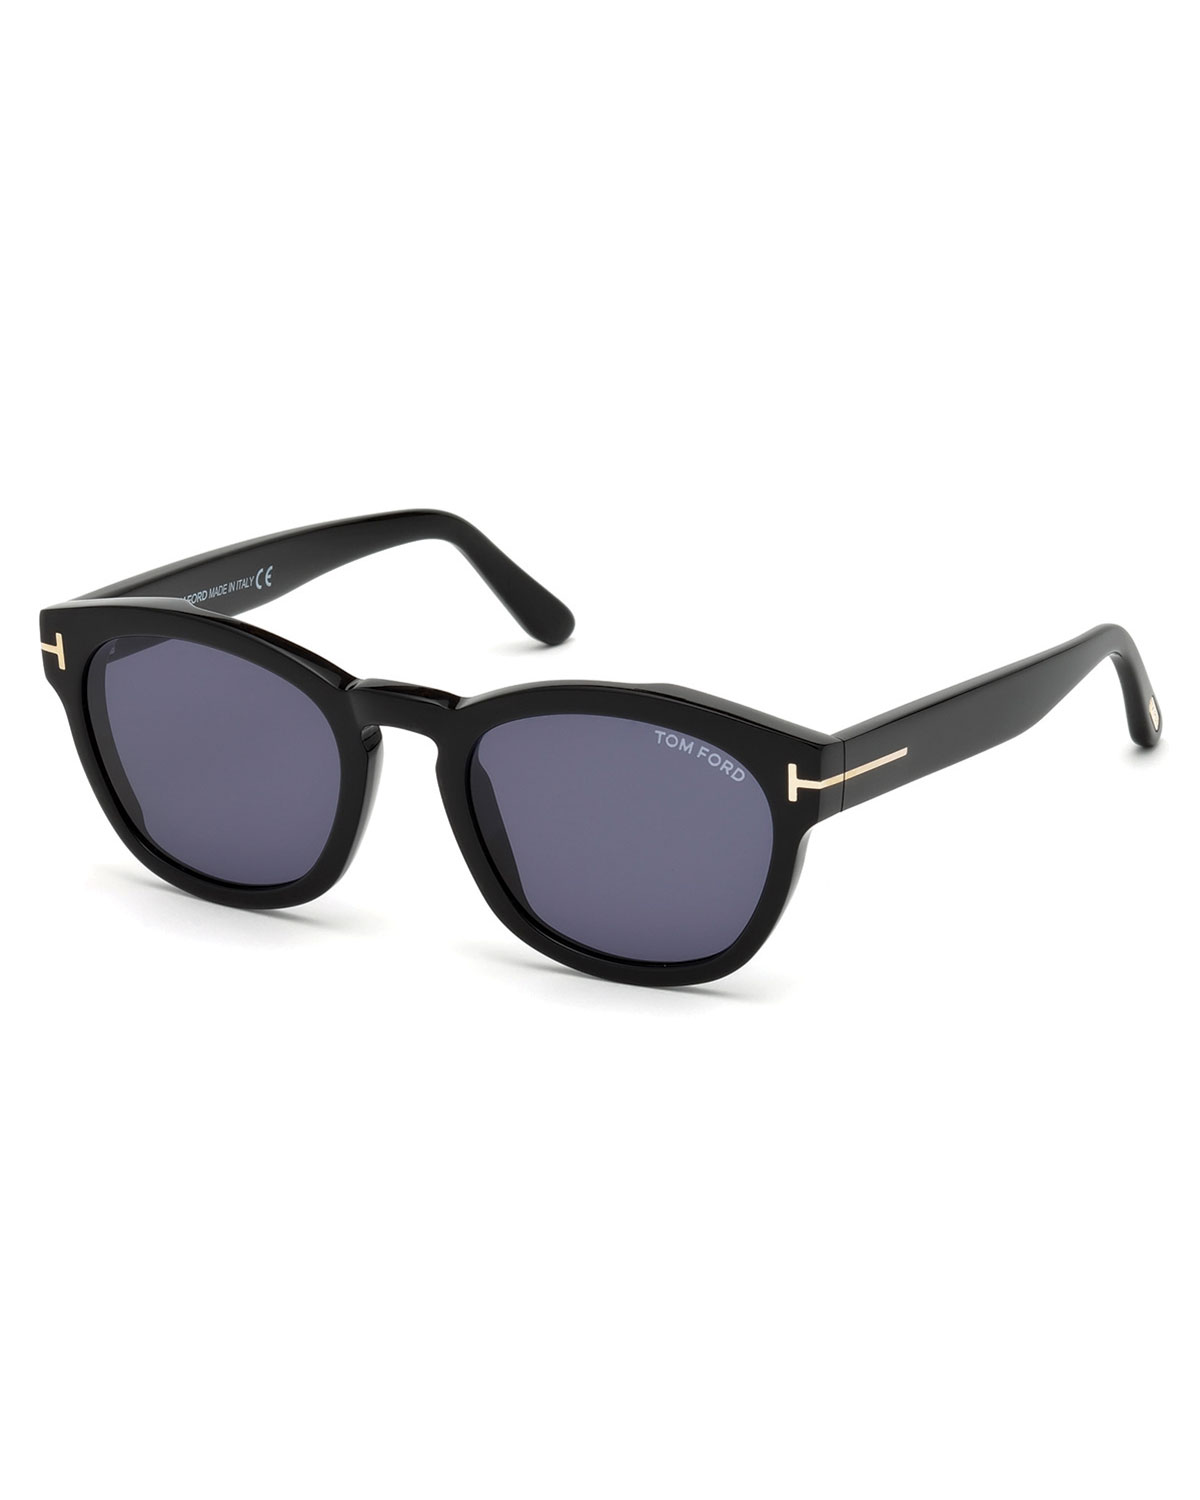 03577ac042 Tom Ford Uv Protection Sunglasses